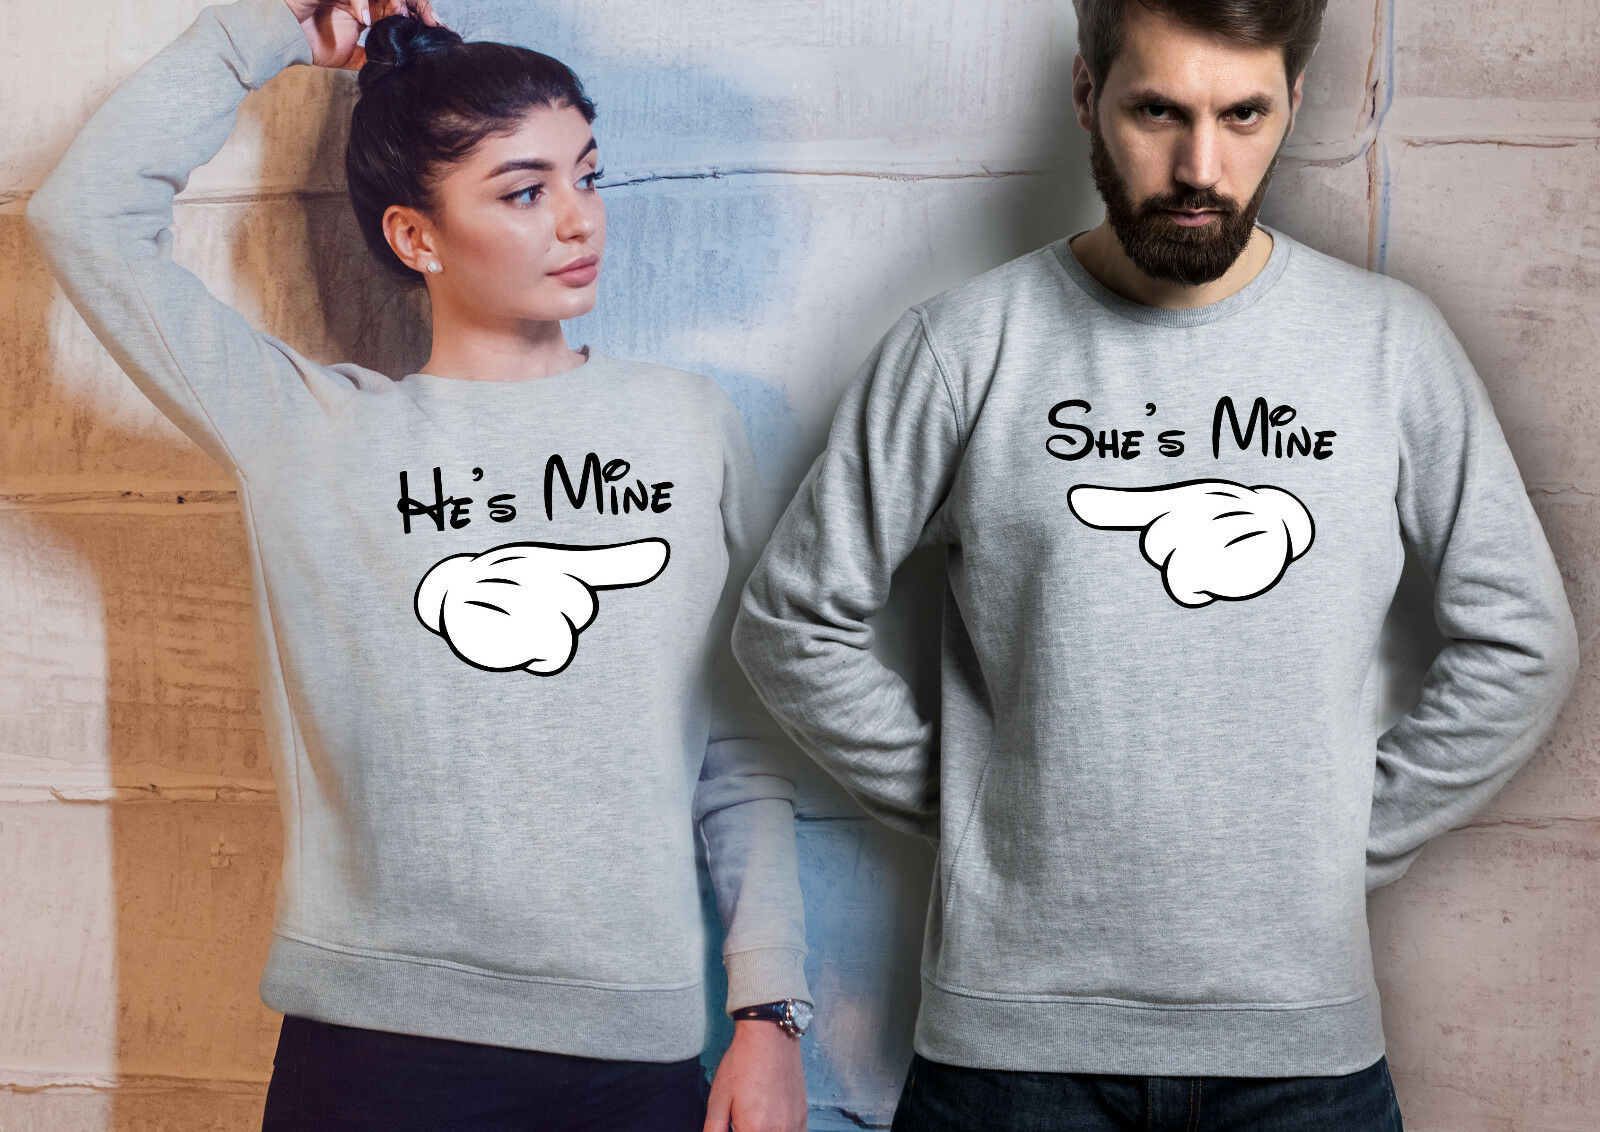 He is Mine, She is Mine. His and Hers Sport Grey Unisex Couples Sweatshirts